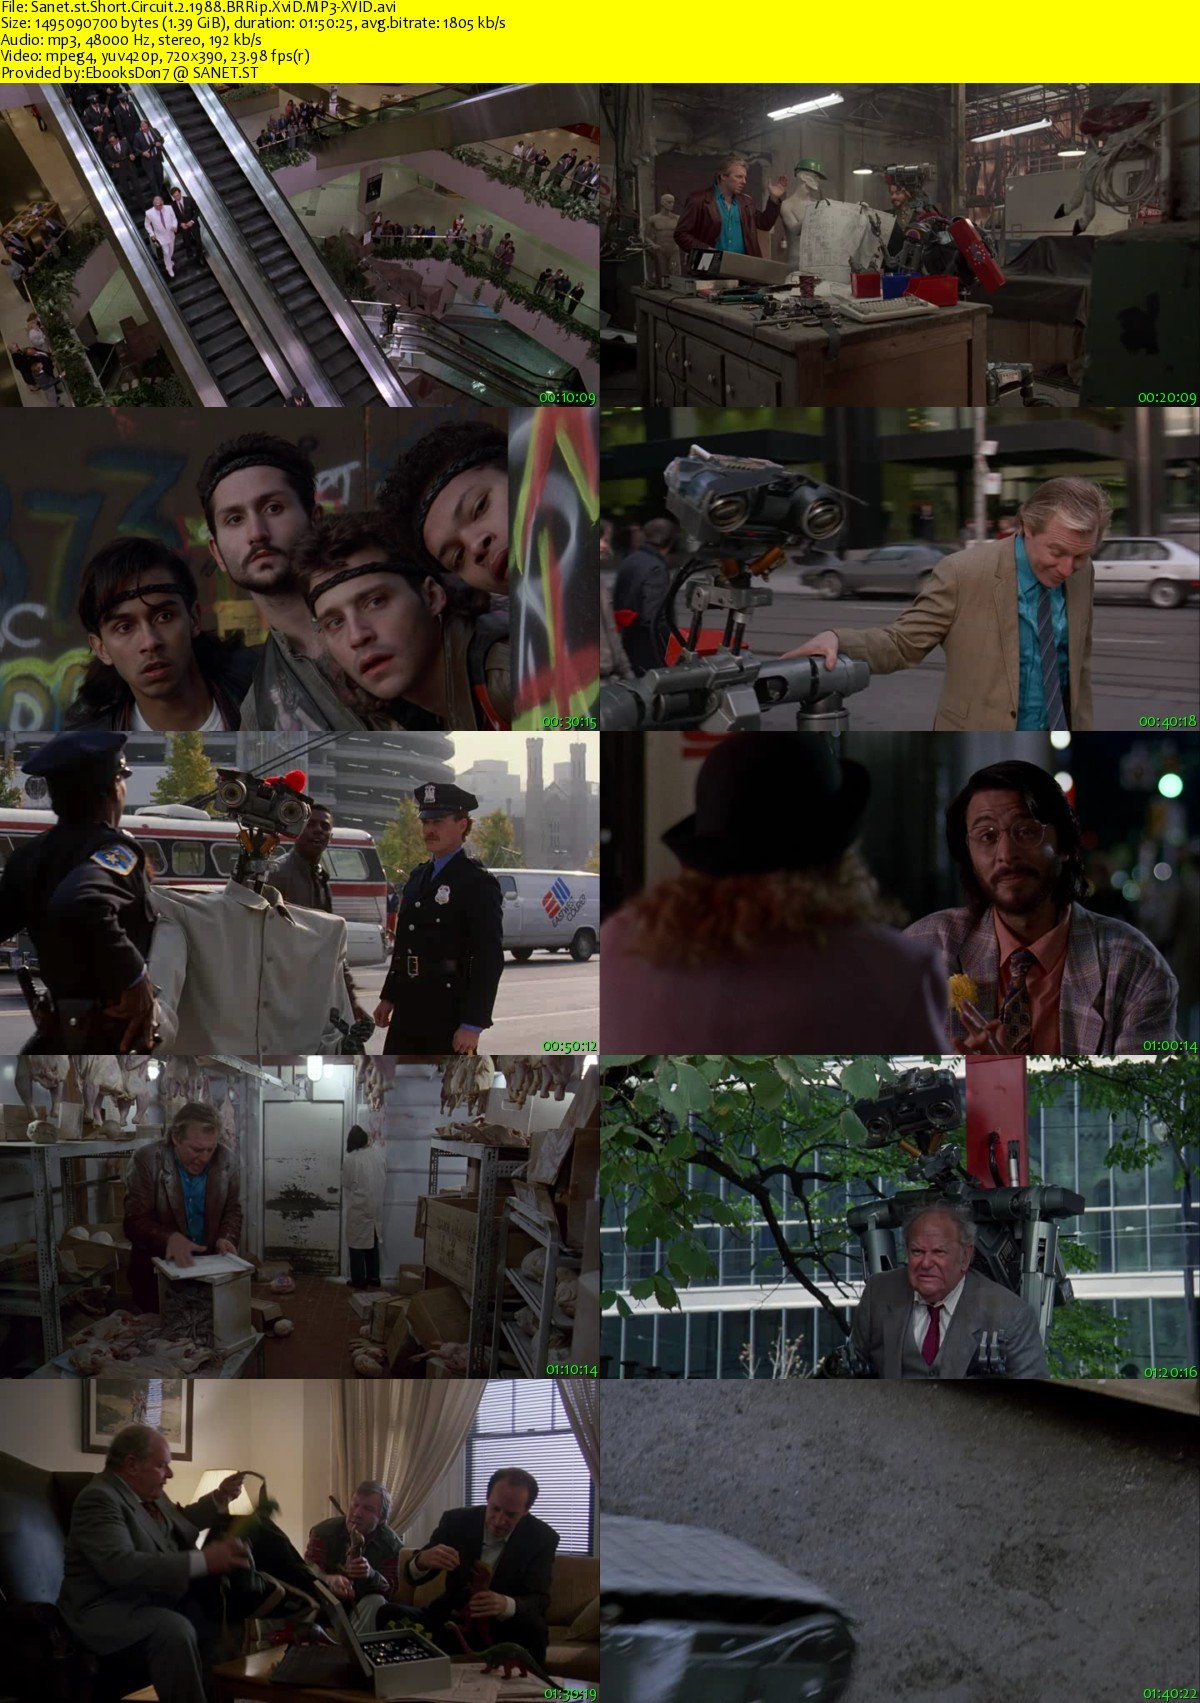 Download Short Circuit 2 1988 Brrip Xvid Mp3 Softarchive Shortcircuit2